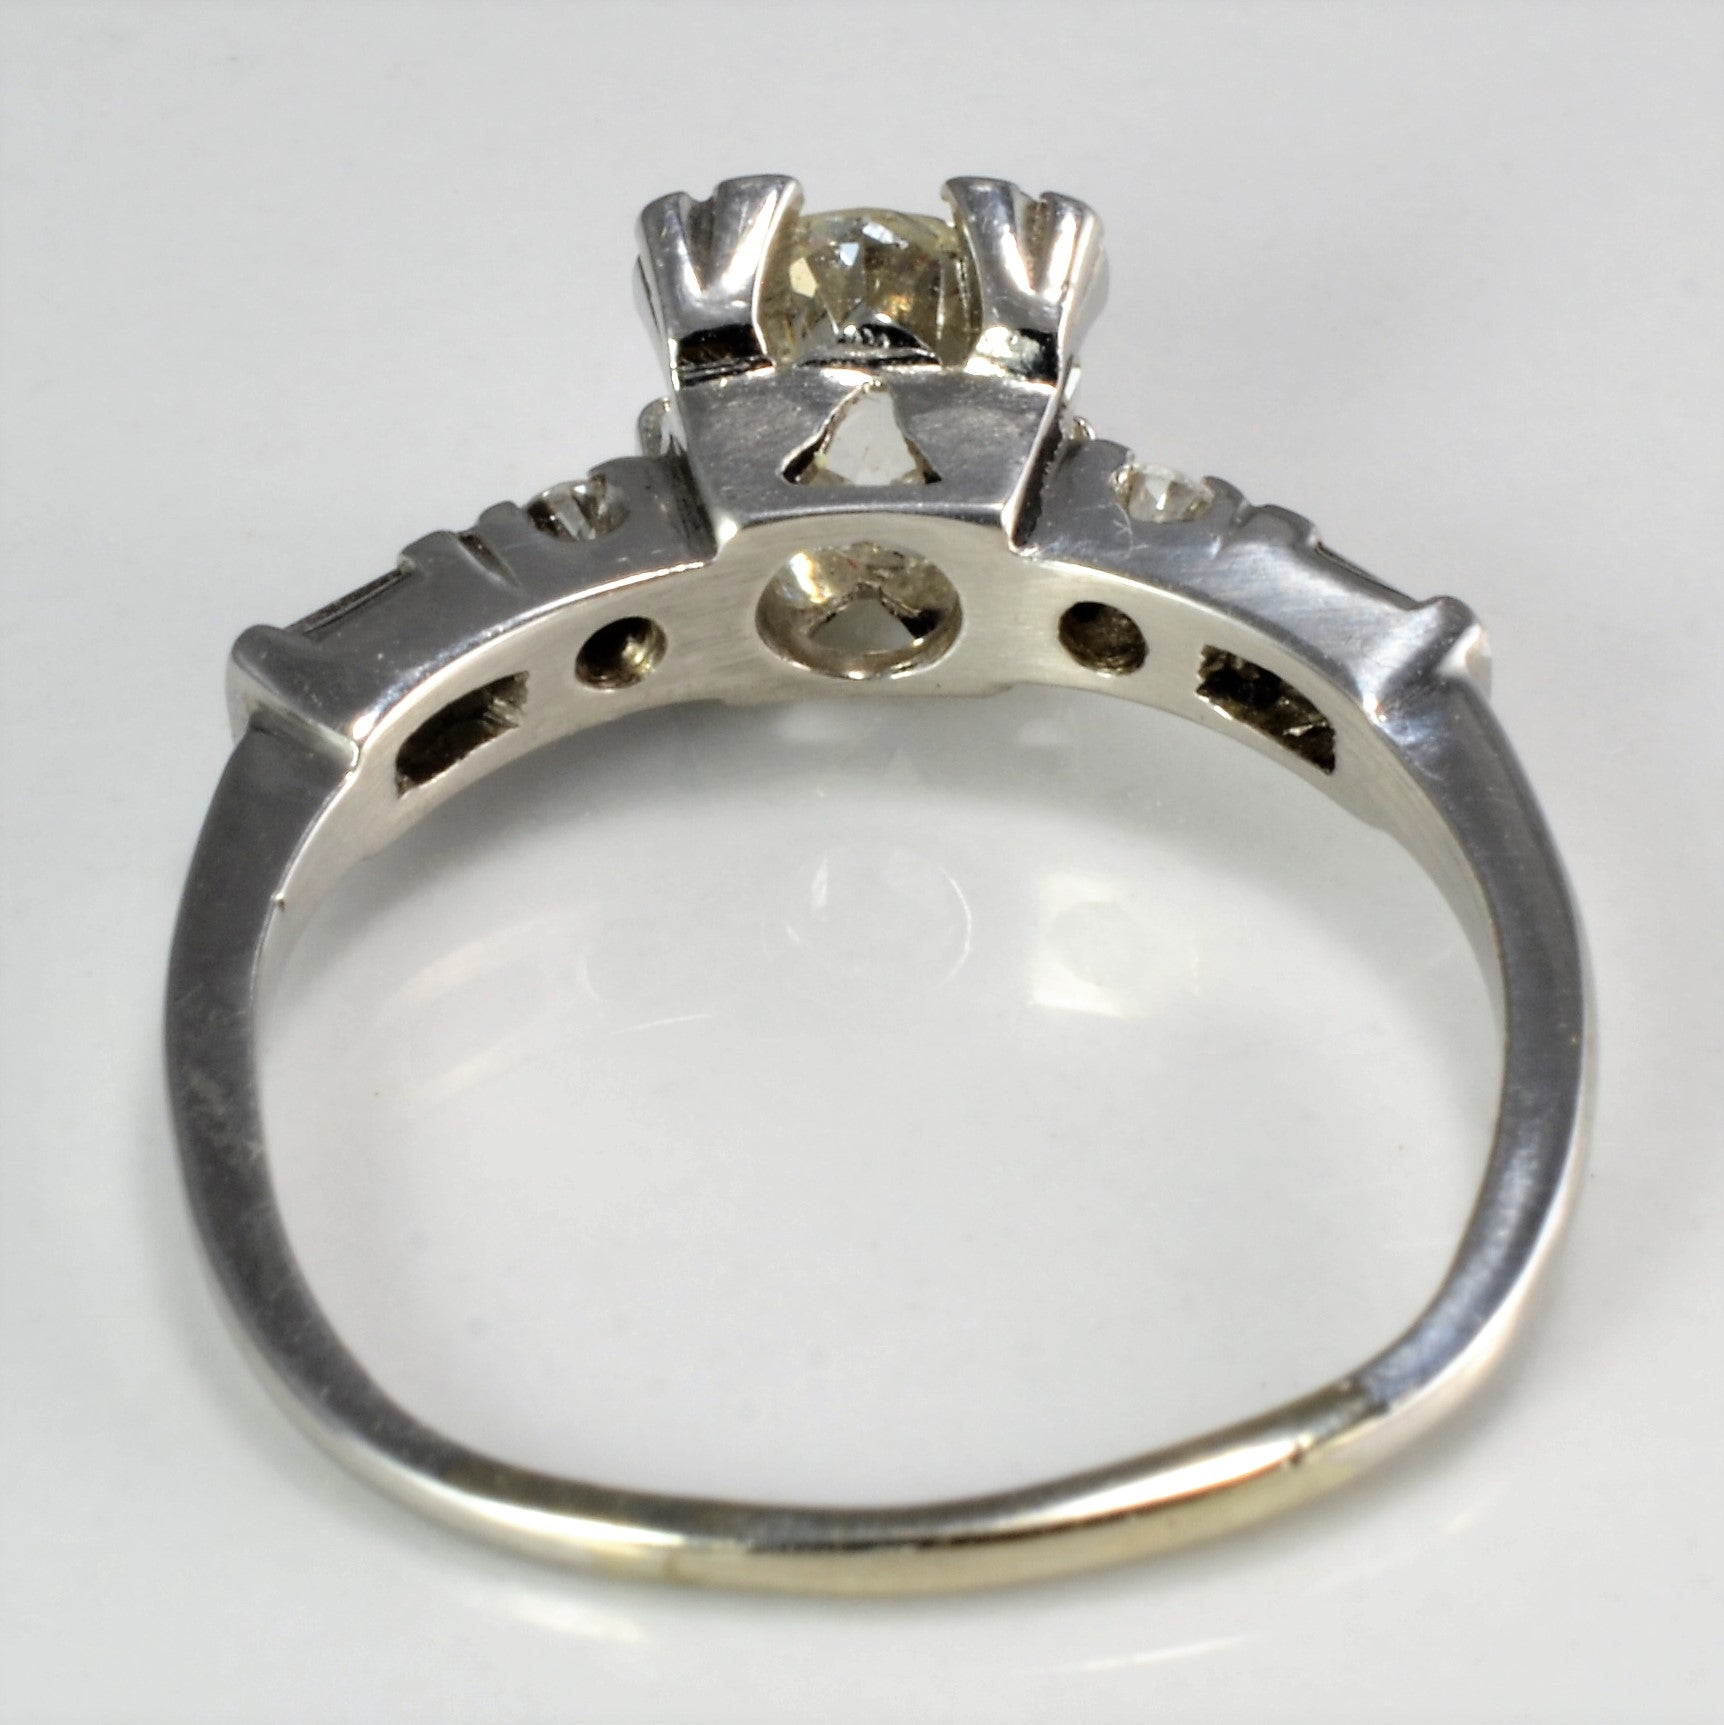 Edwardian Era Vintage Diamond Engagement Ring | 1.00 ctw, SZ 6.75 |